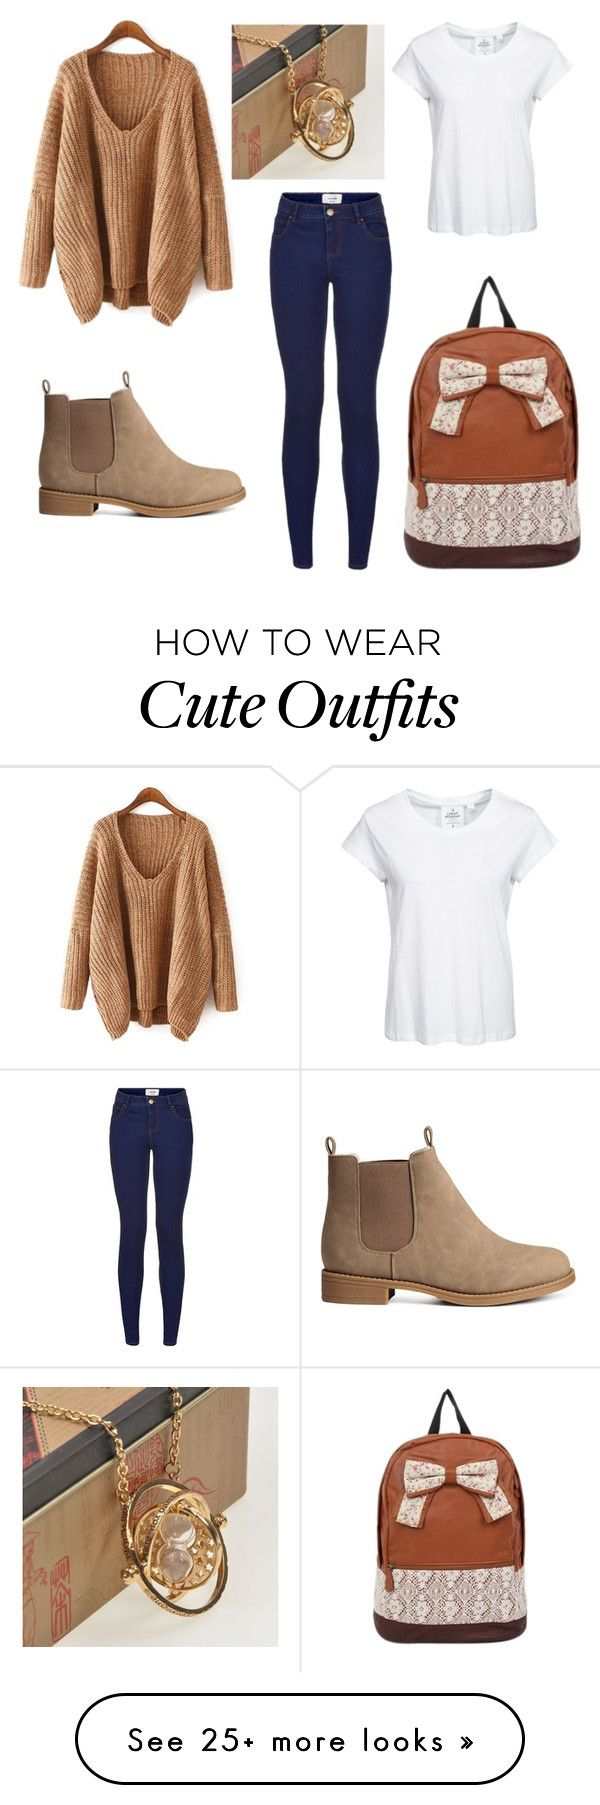 """""""Time Turner Outfit"""" by hashtagemojis on Polyvore featuring H&M, Cheap Monday and Retrò"""